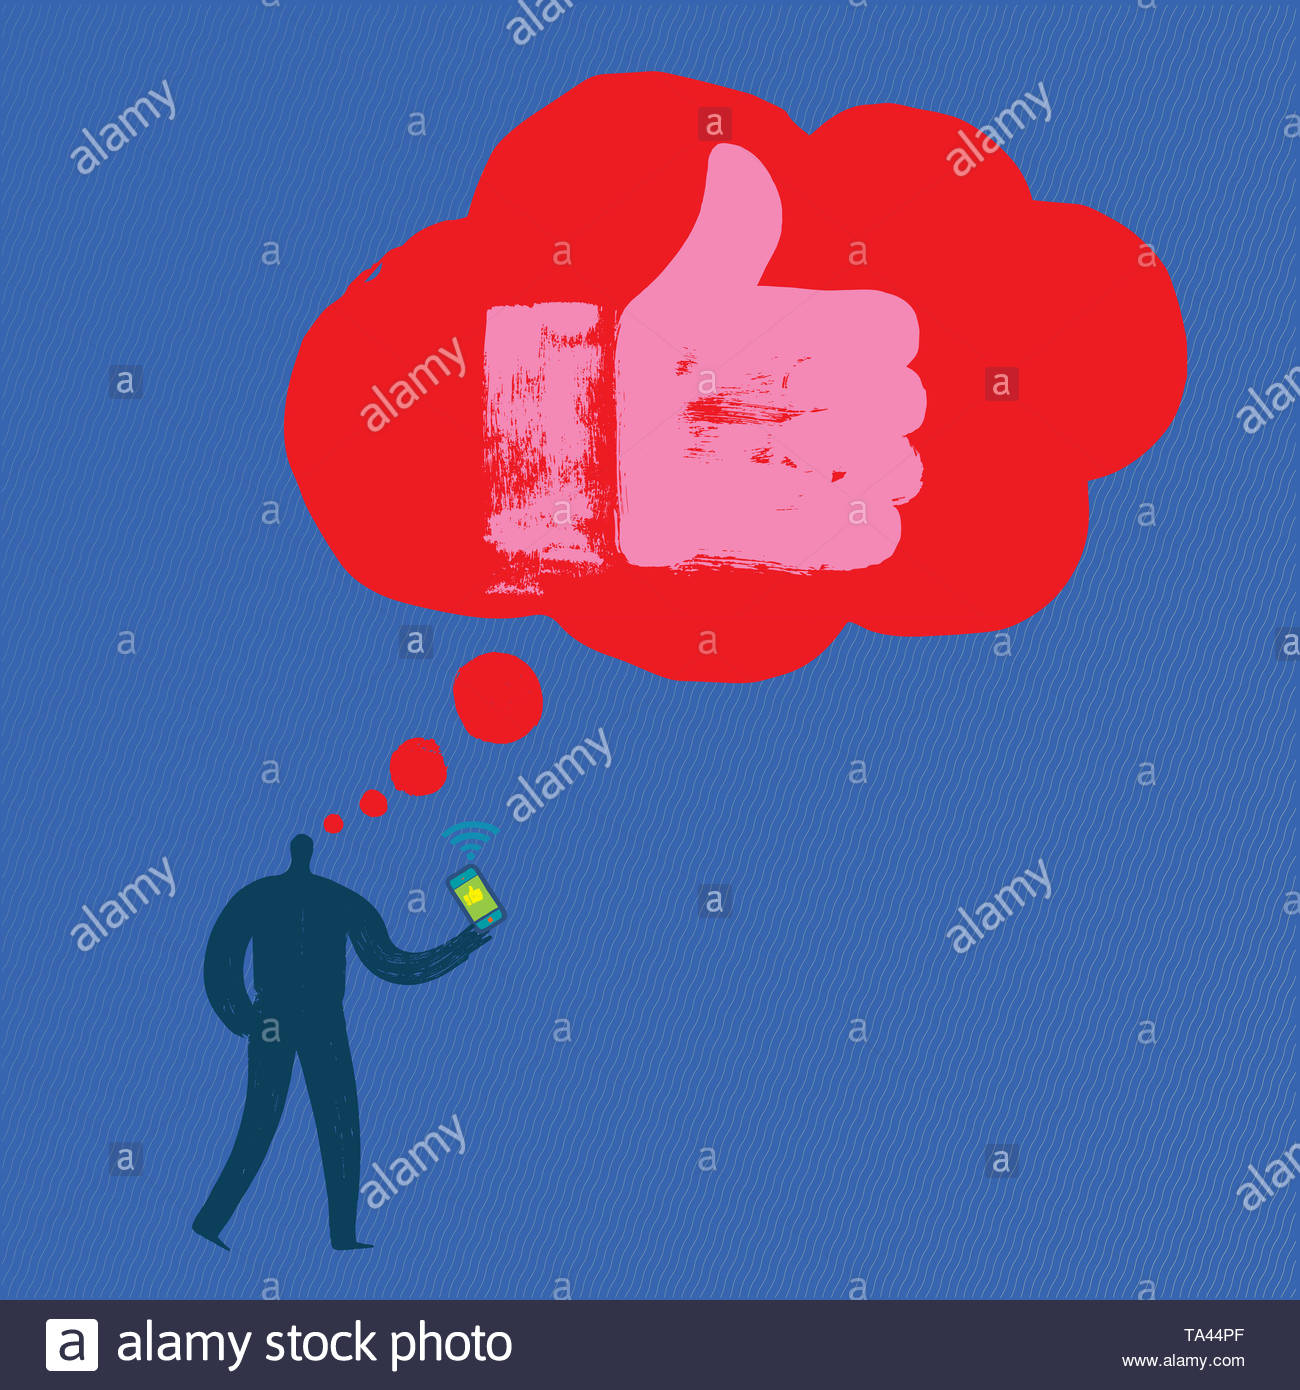 Man with Smartphone thinking about Liking, Hand Like, Vector, Blue Background, Like hand, Grunge texture, One person, Thought bubble, Millennial, Fun - Stock Image